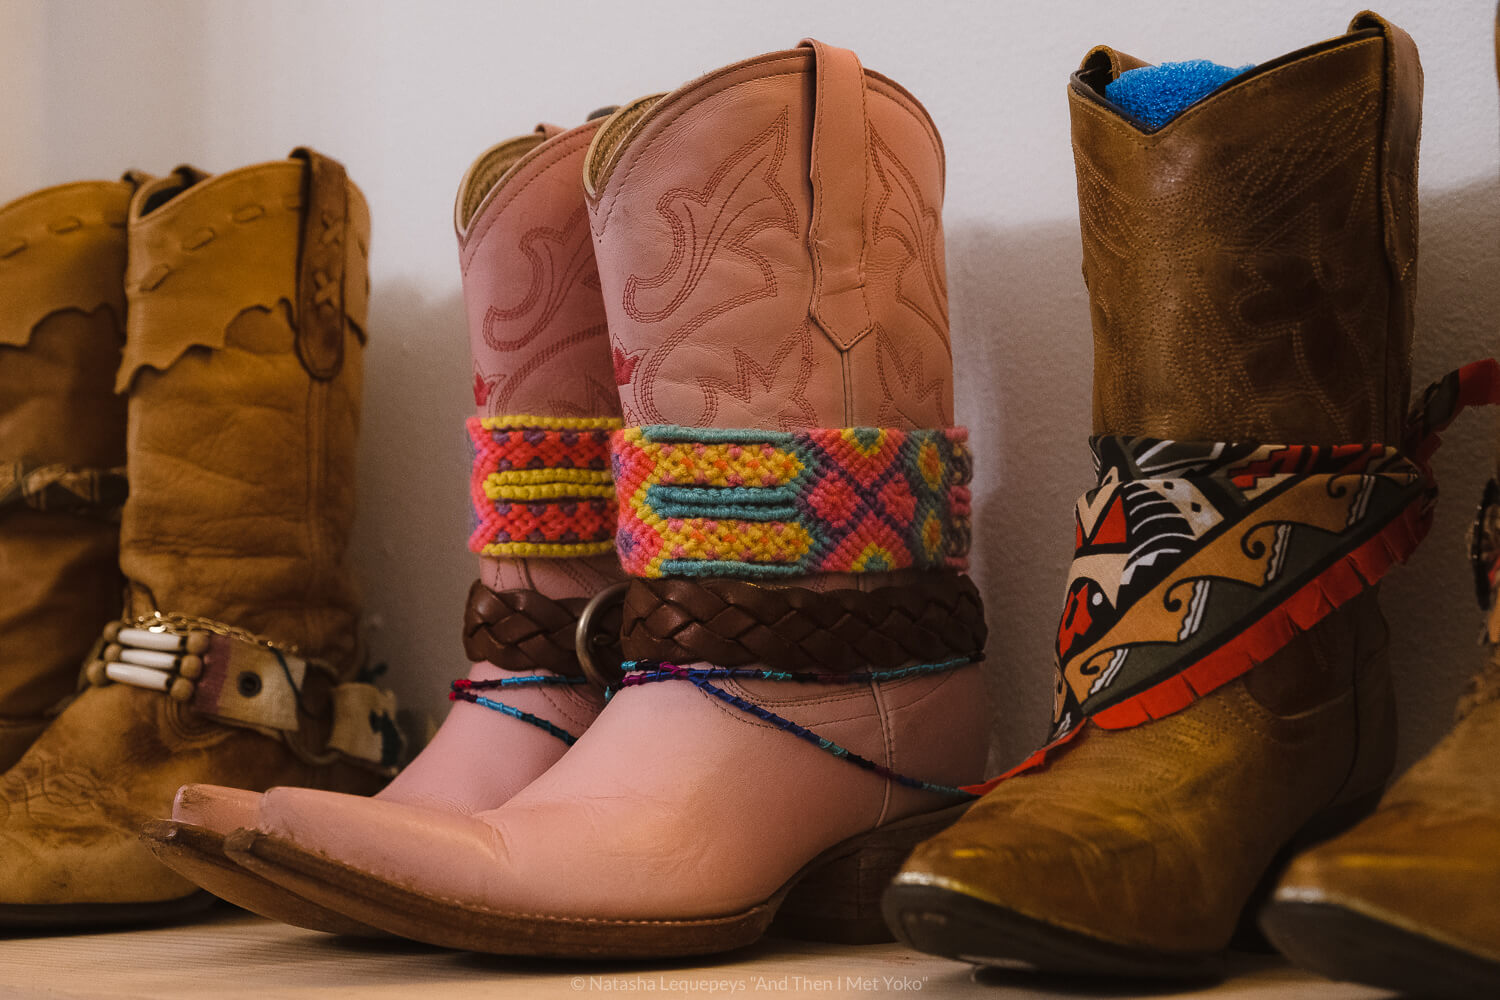 """Vintage cowboy boots at East & Up vintage clothing boutique, downtown Savannah, Georgia. Travel photography and guide by © Natasha Lequepeys for """"And Then I Met Yoko"""". #savannah #usa #travelguide #travelblog"""